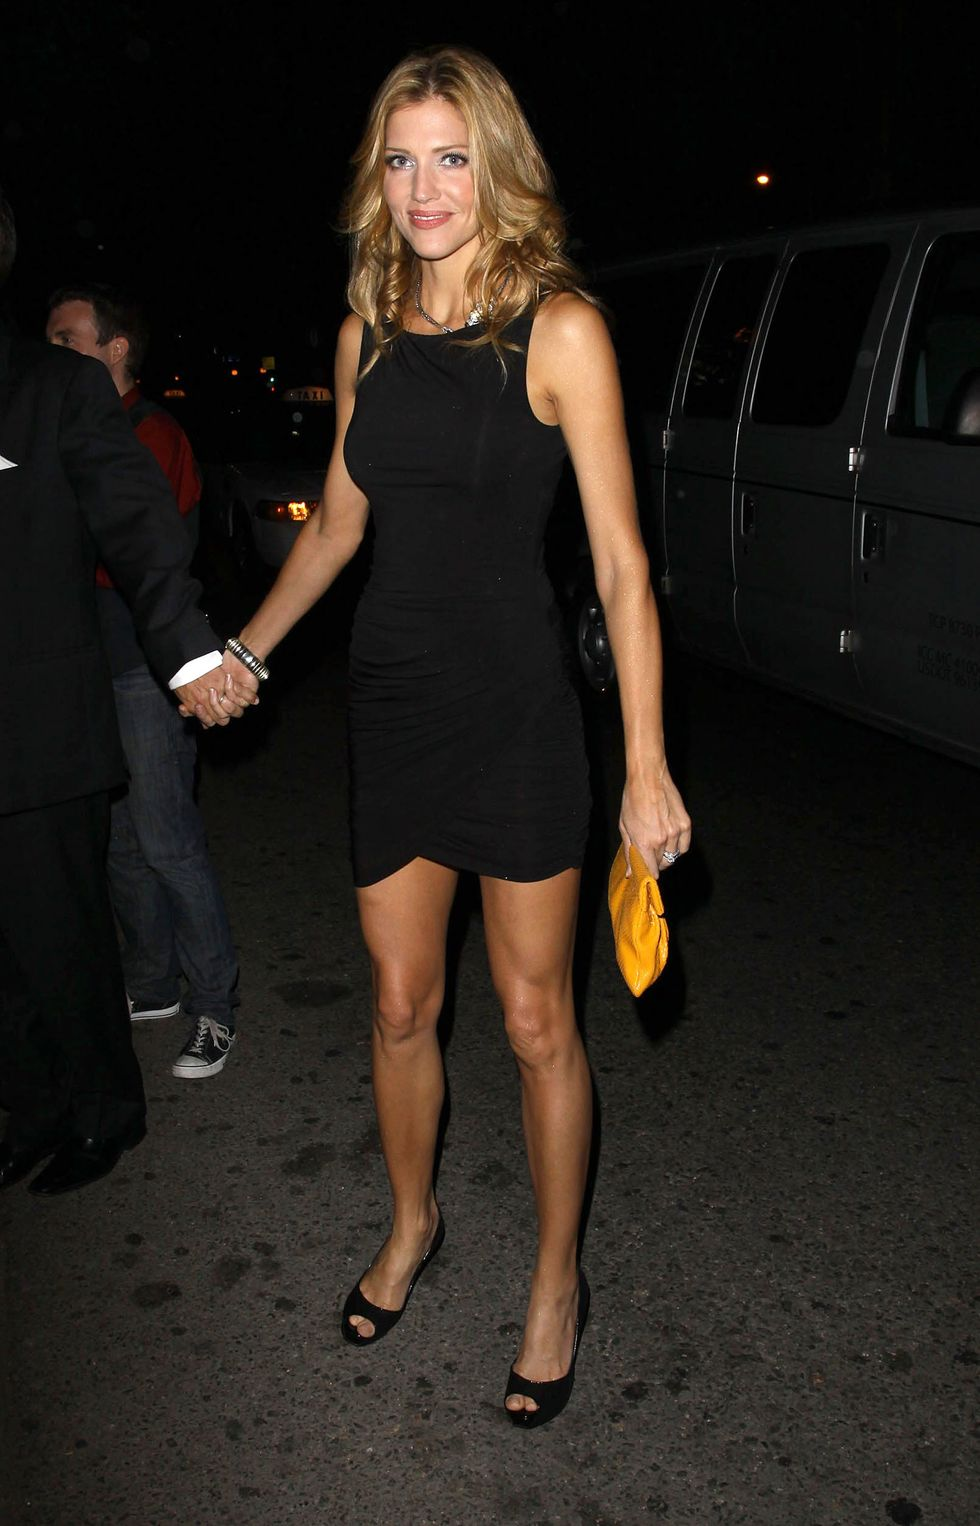 tricia-helfer-maxim-november-2009-cover-celebration-in-west-hollywood-02